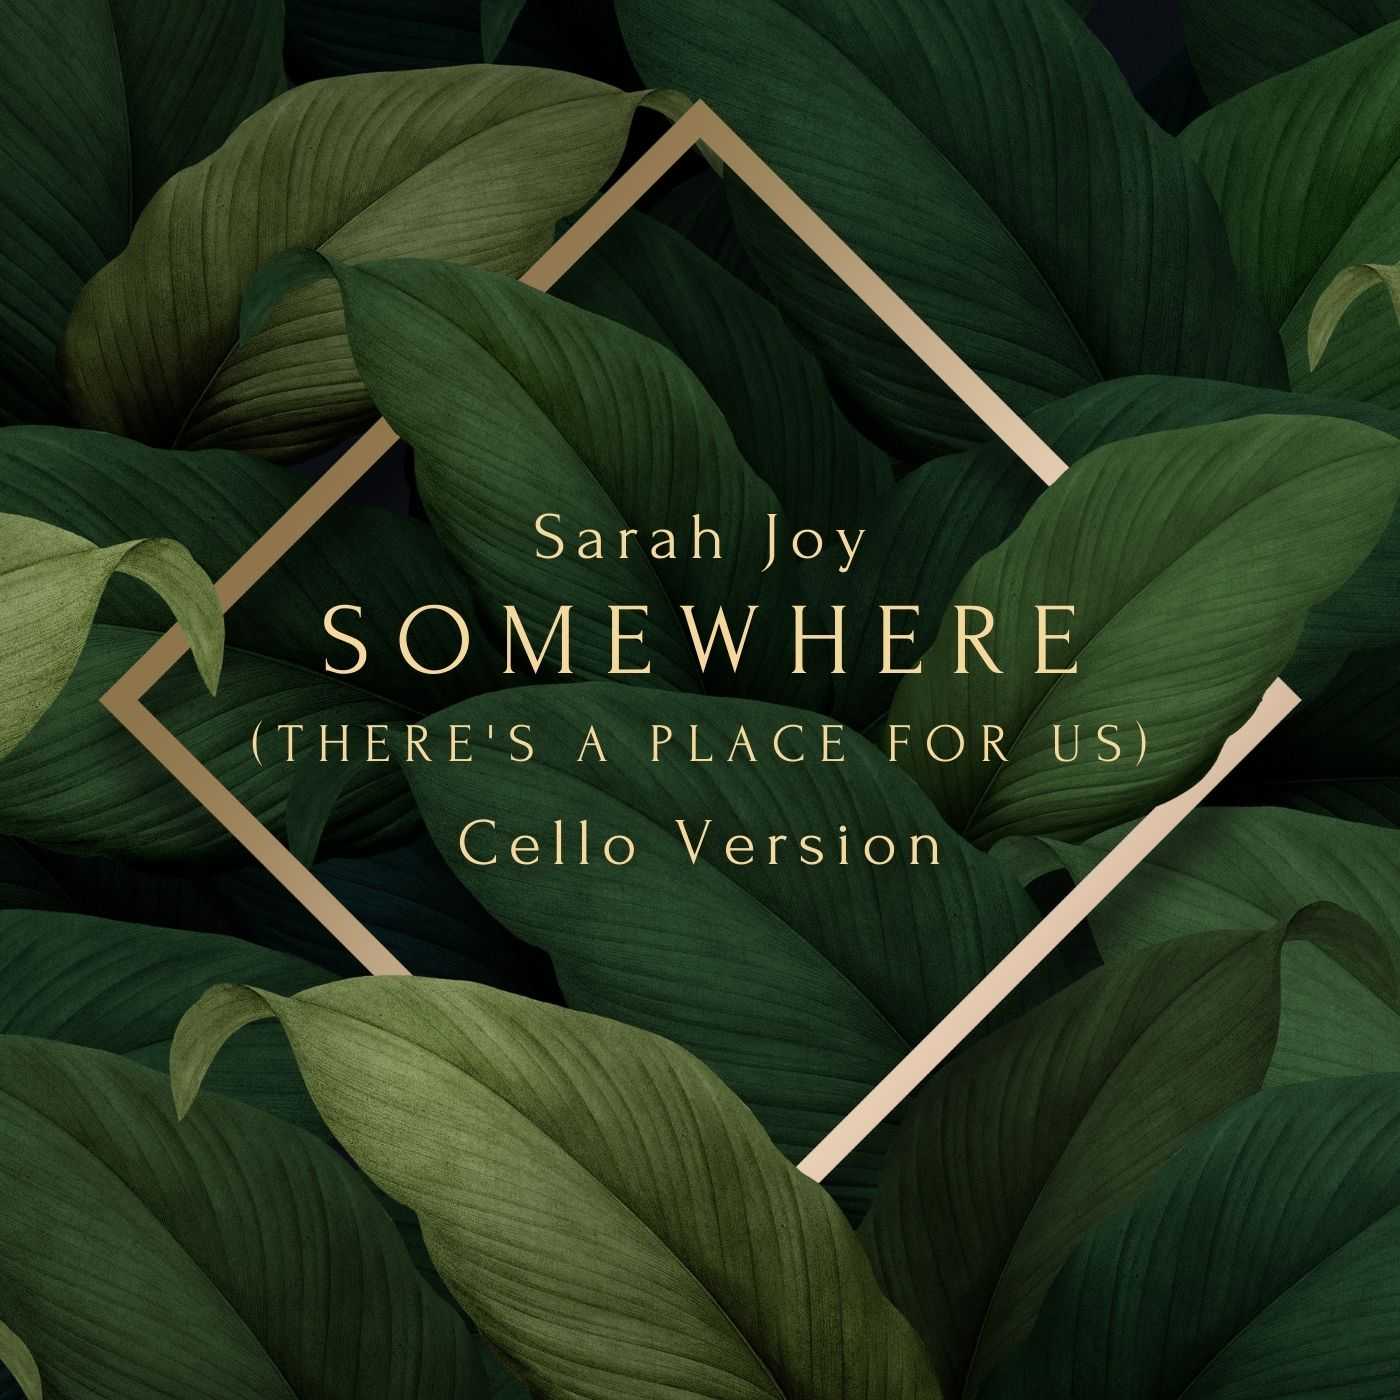 Somewhere (There's a Place for Us) - Cello Version